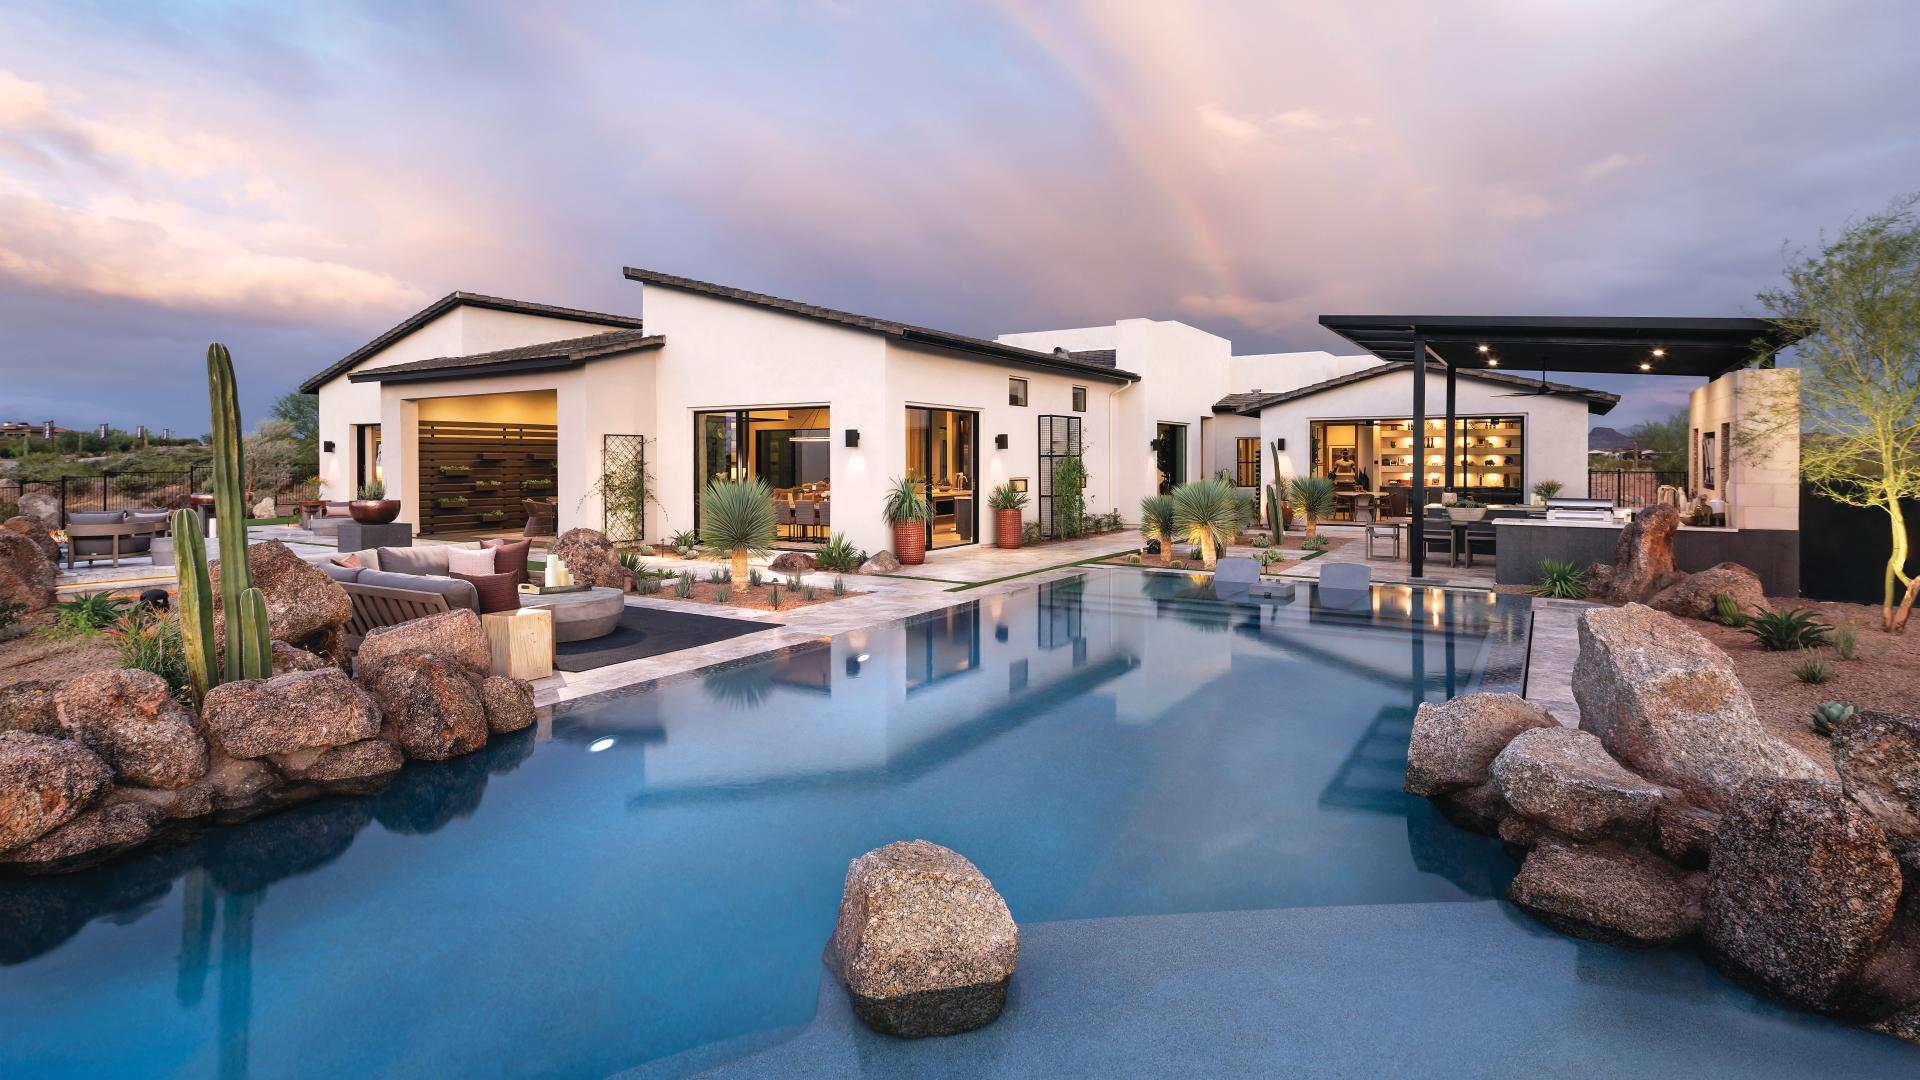 Enjoy indoor/outdoor living with resort-style backyards on .75-plus acre home sites